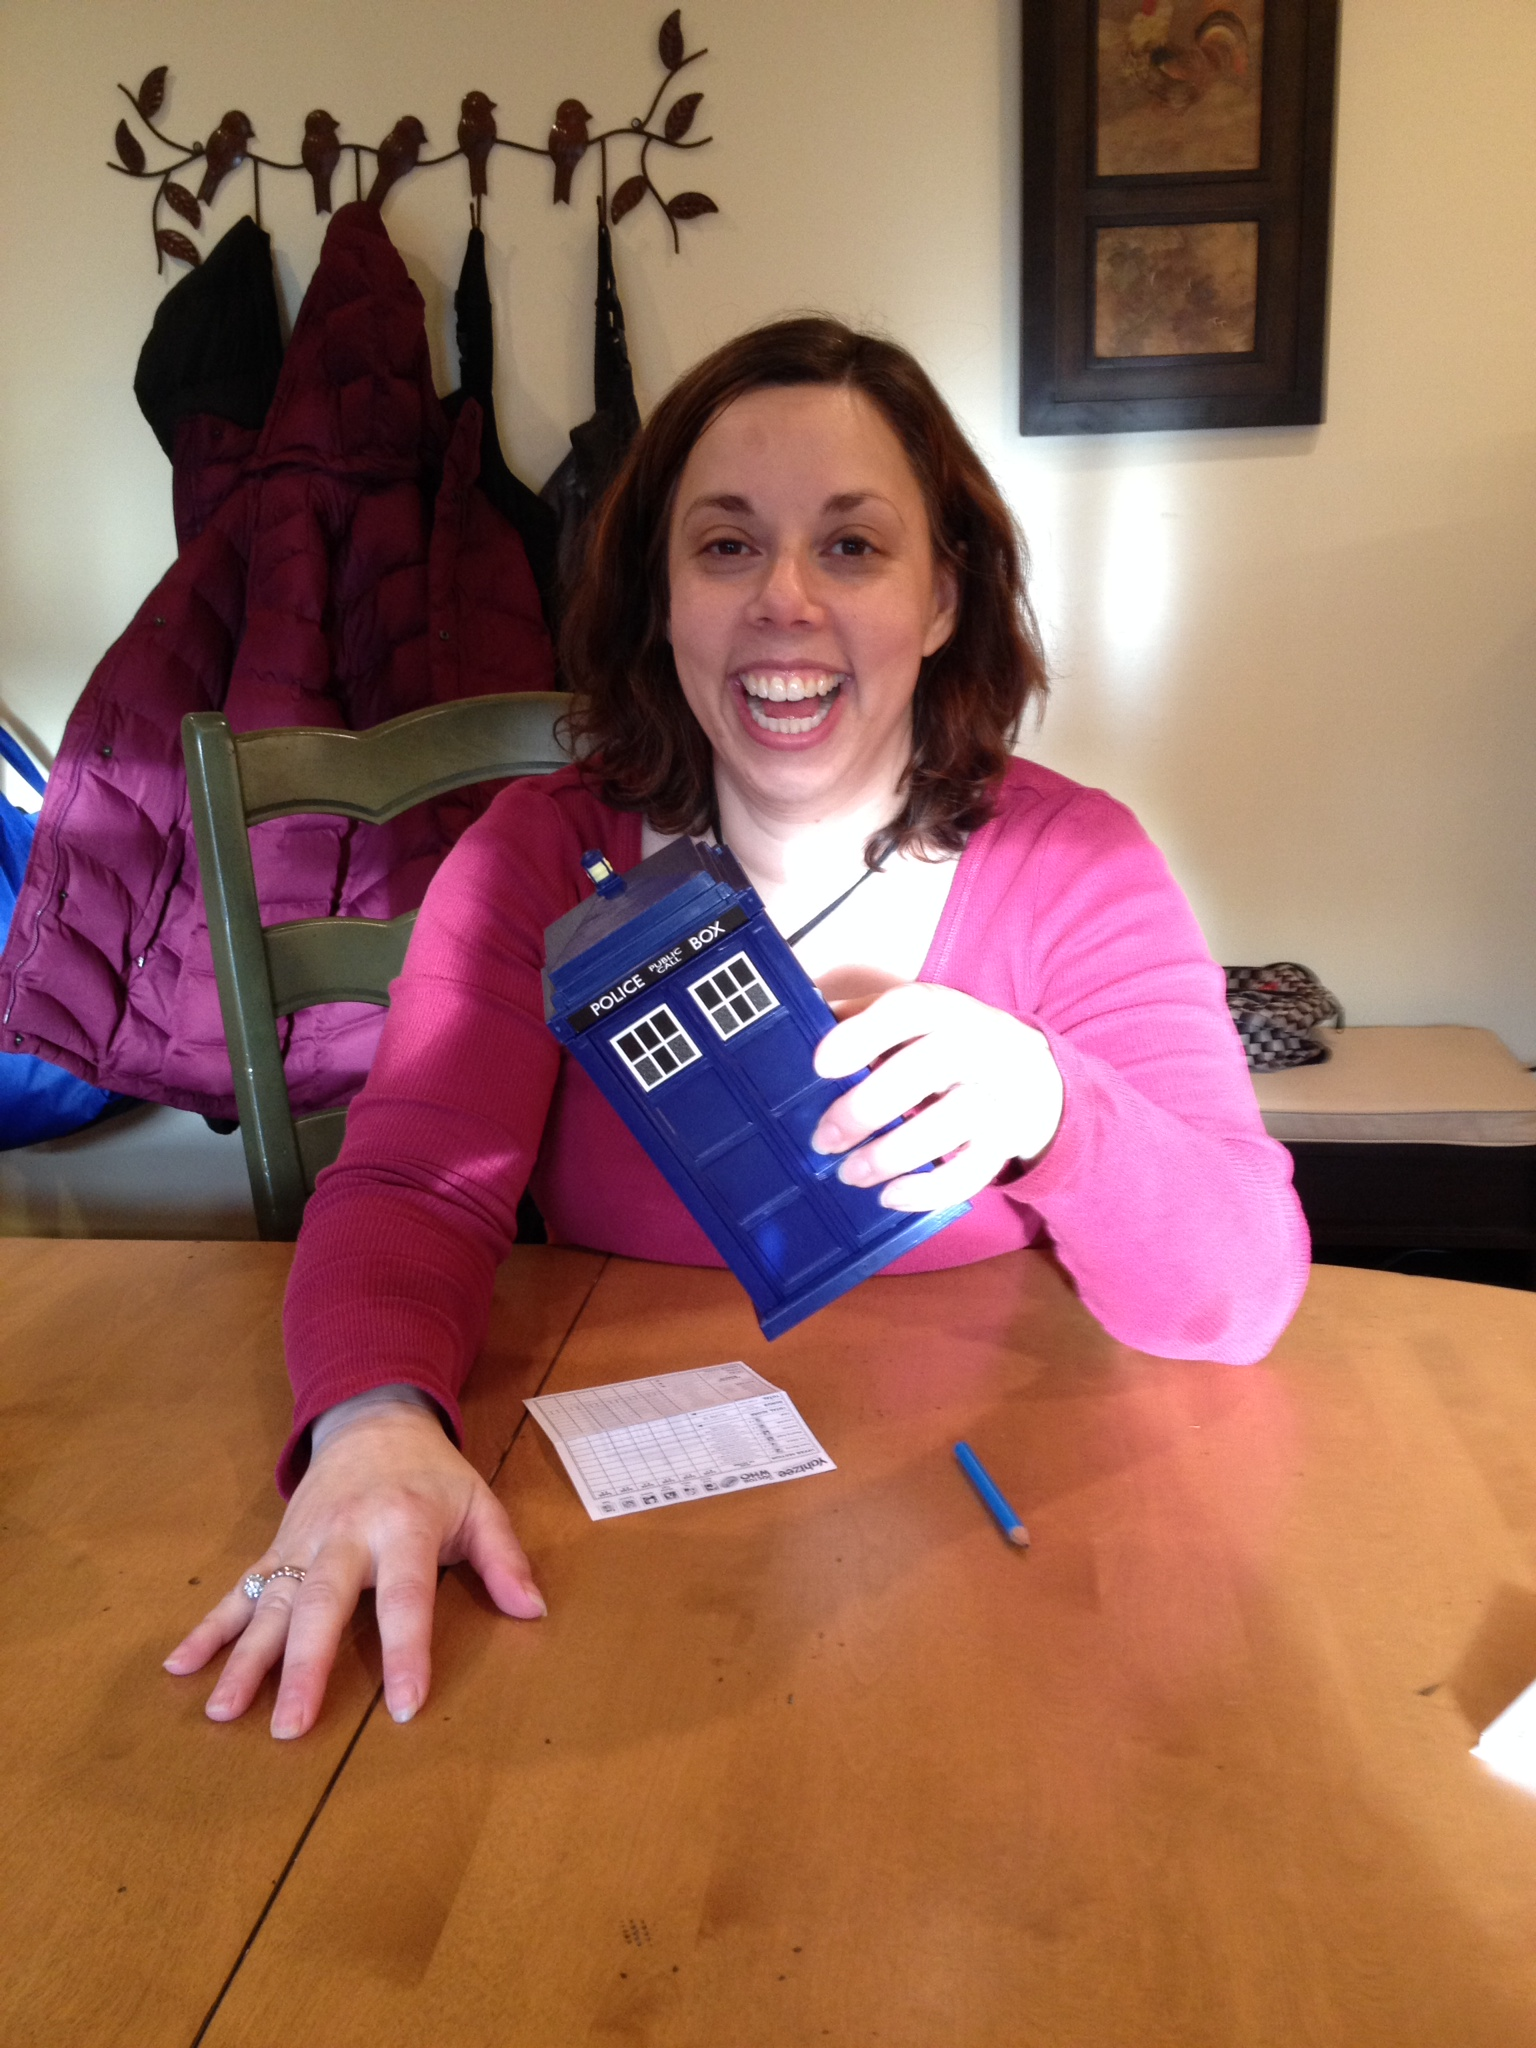 Allie Doctor Who Yahtzee